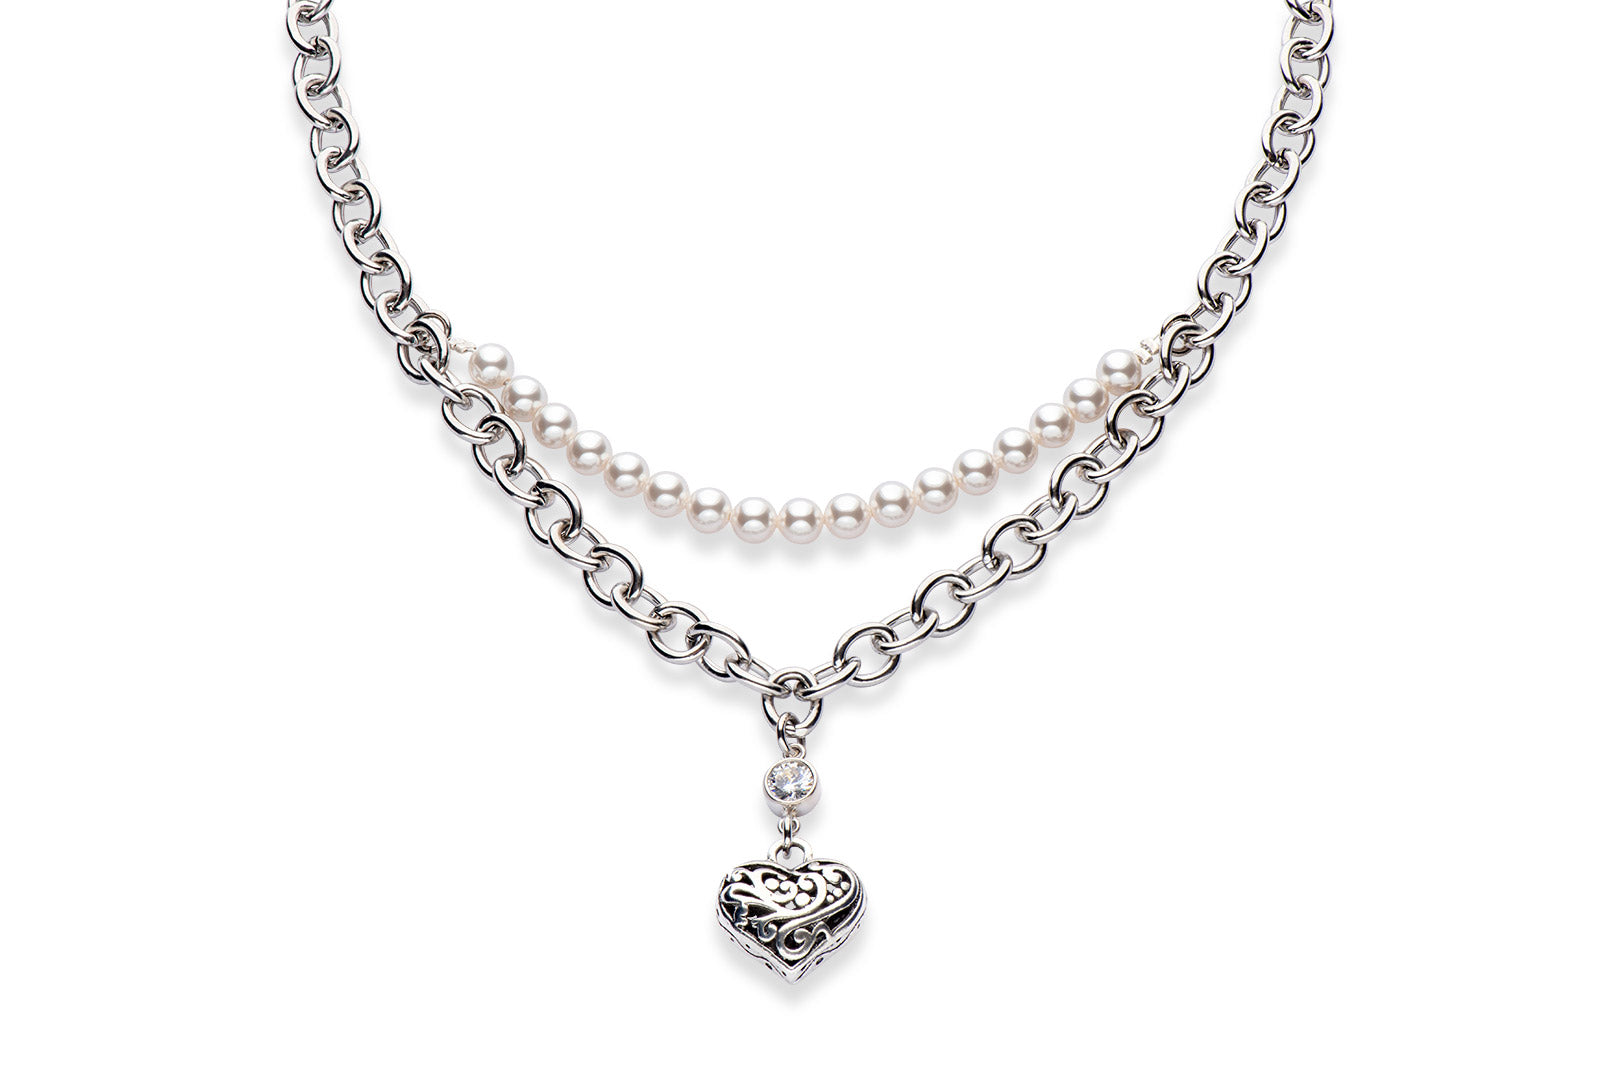 a stainless steel statement necklace with Swarovski crystal pearls and a pewter heart